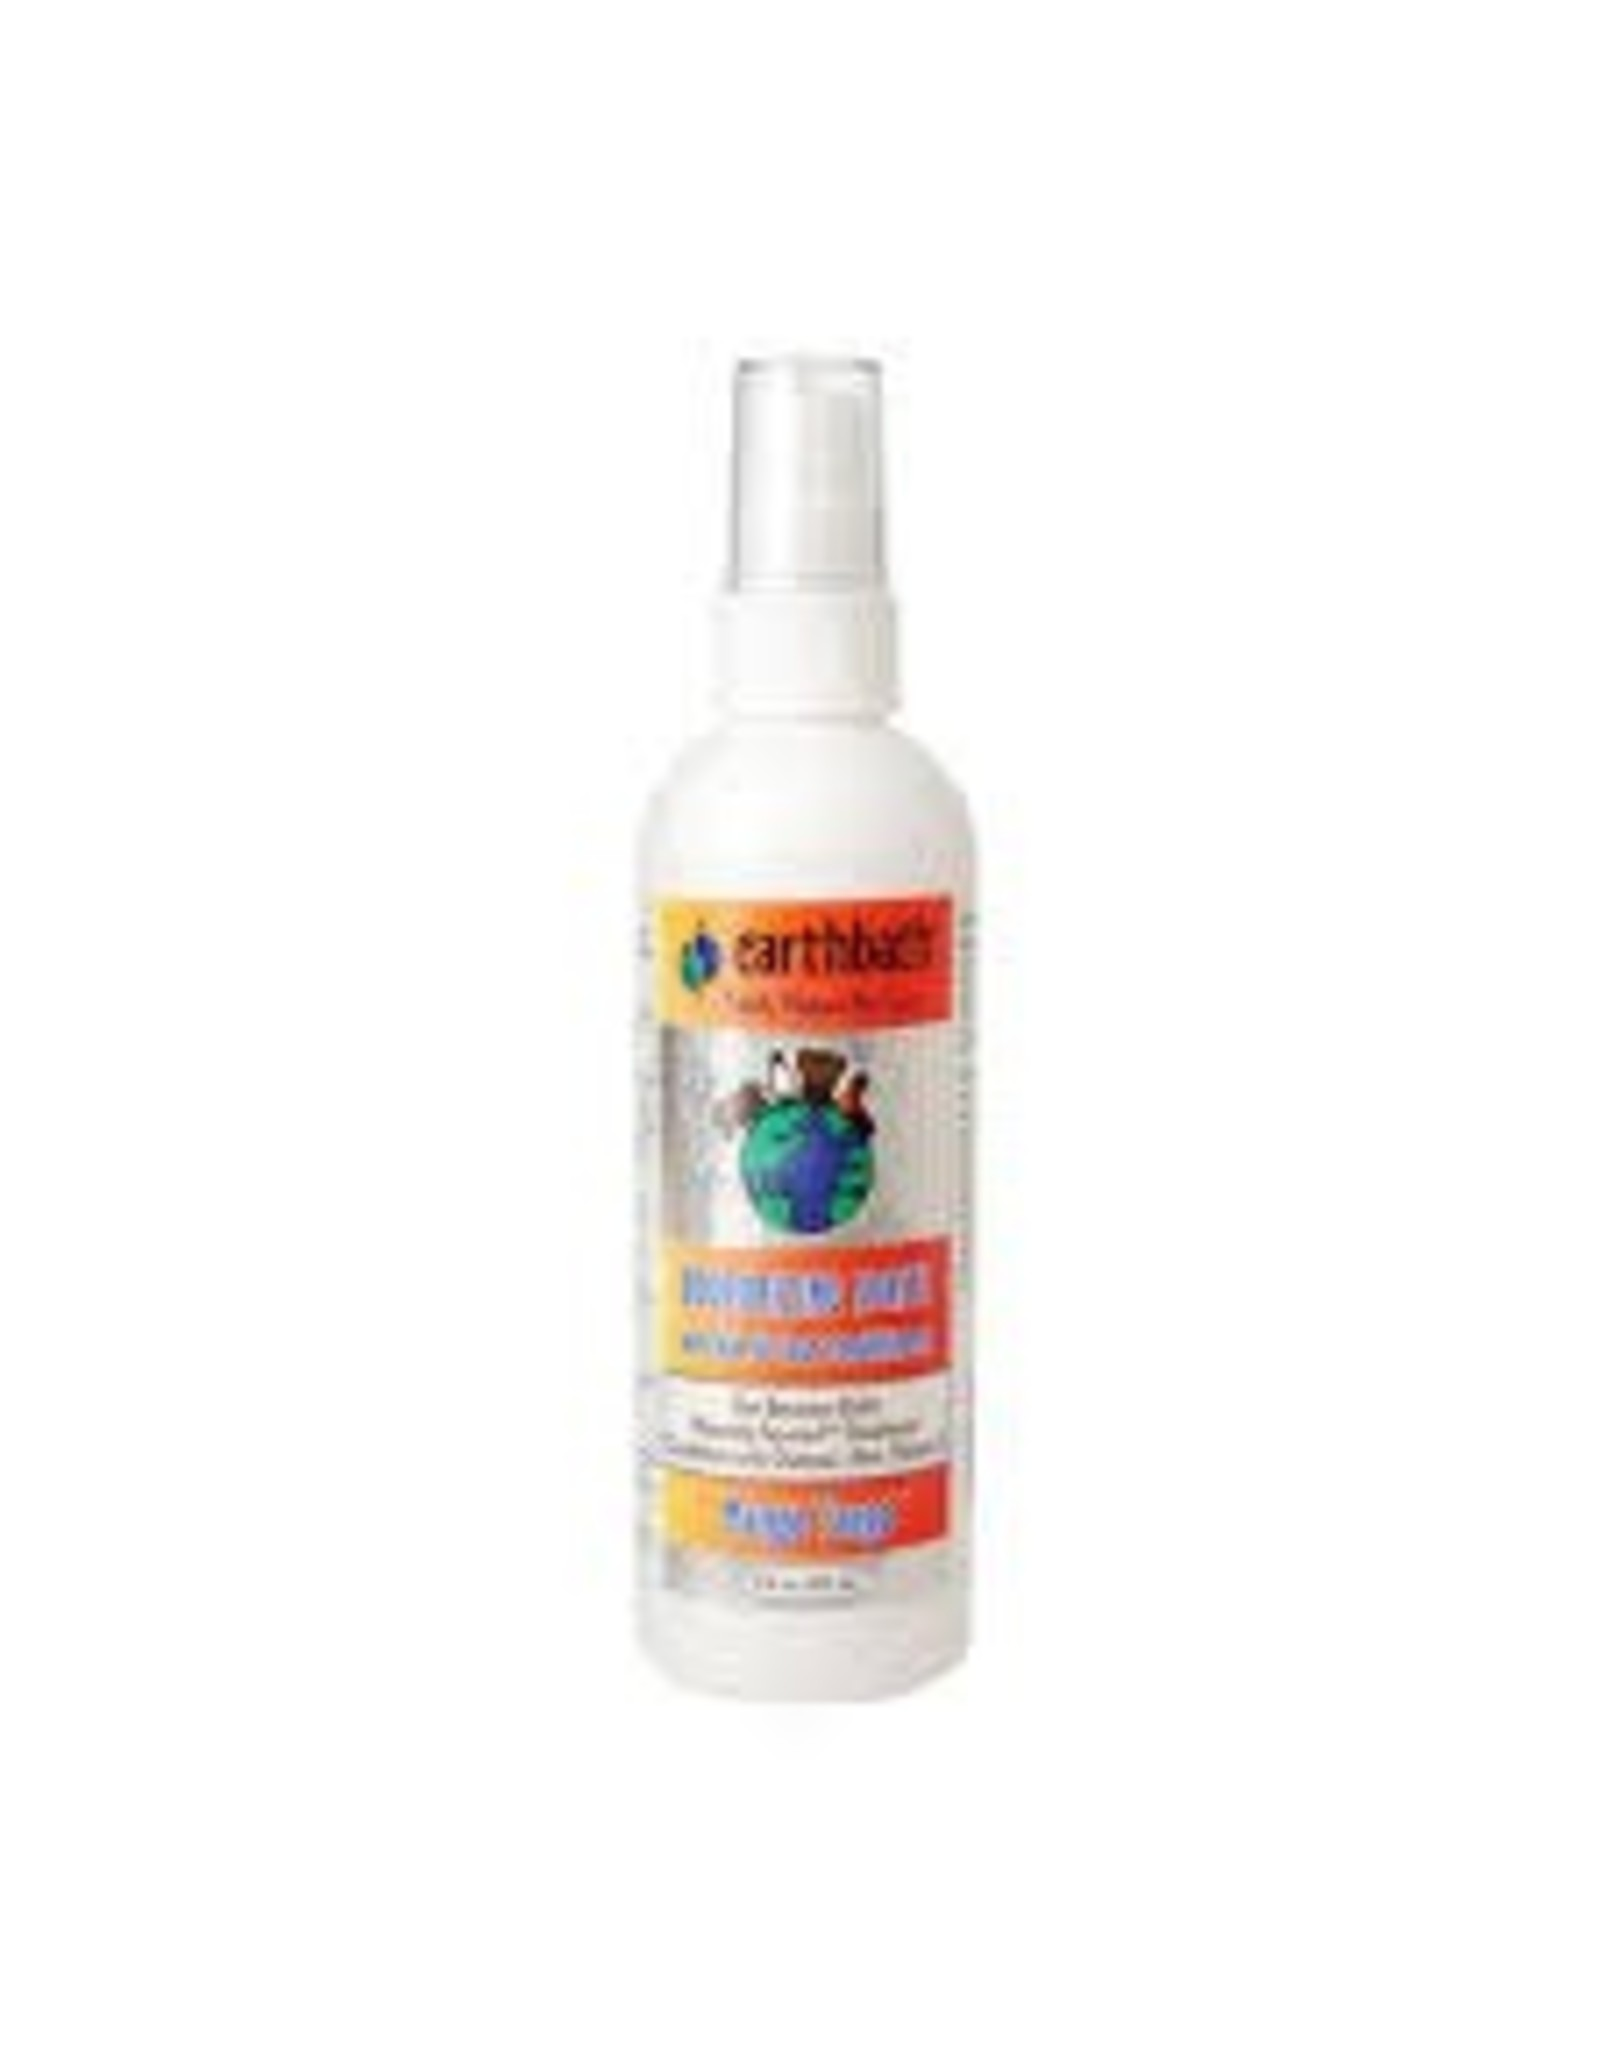 EARTHBATH EARTHBATH DEODORIZING SPRAY MANGO TANGO